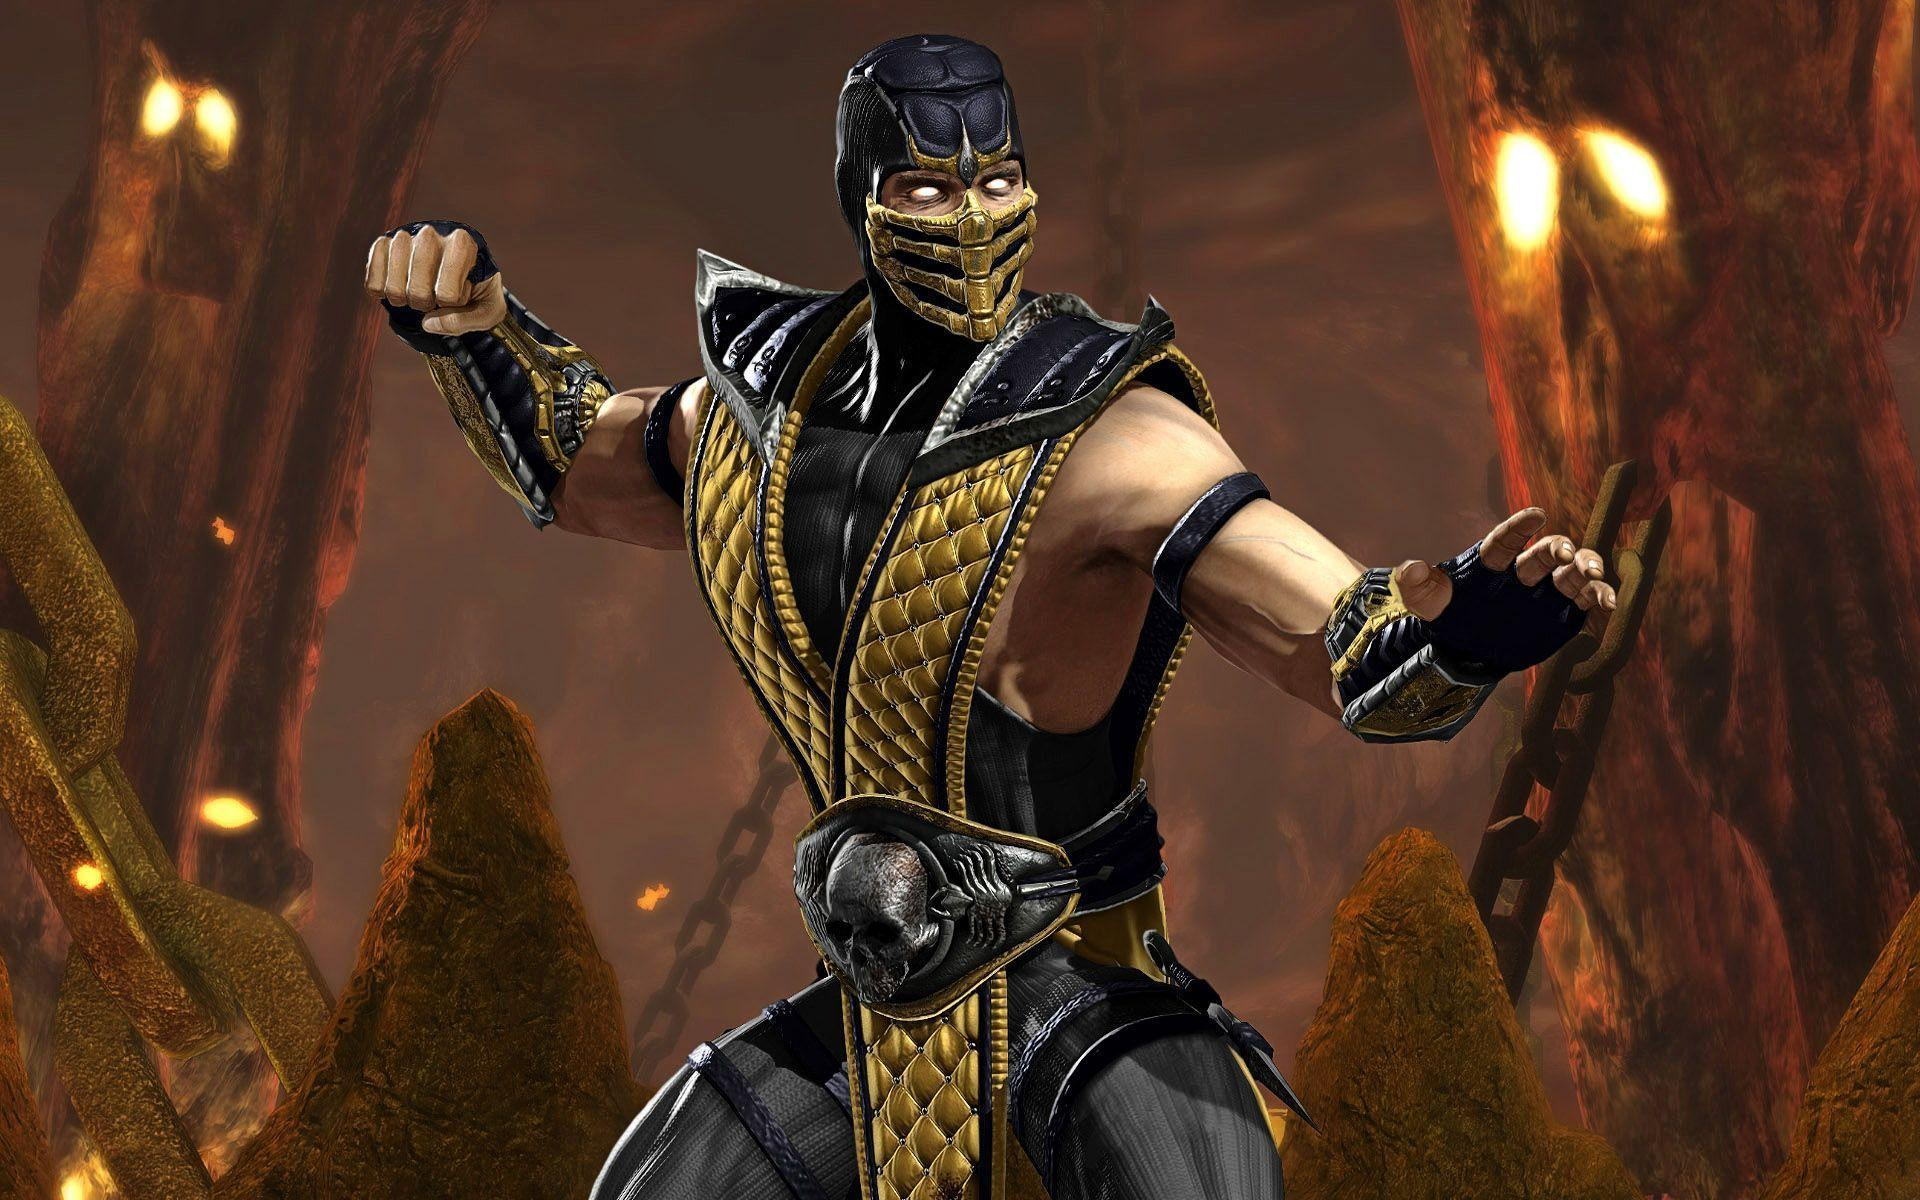 scorpion wallpaper hd in - photo #39